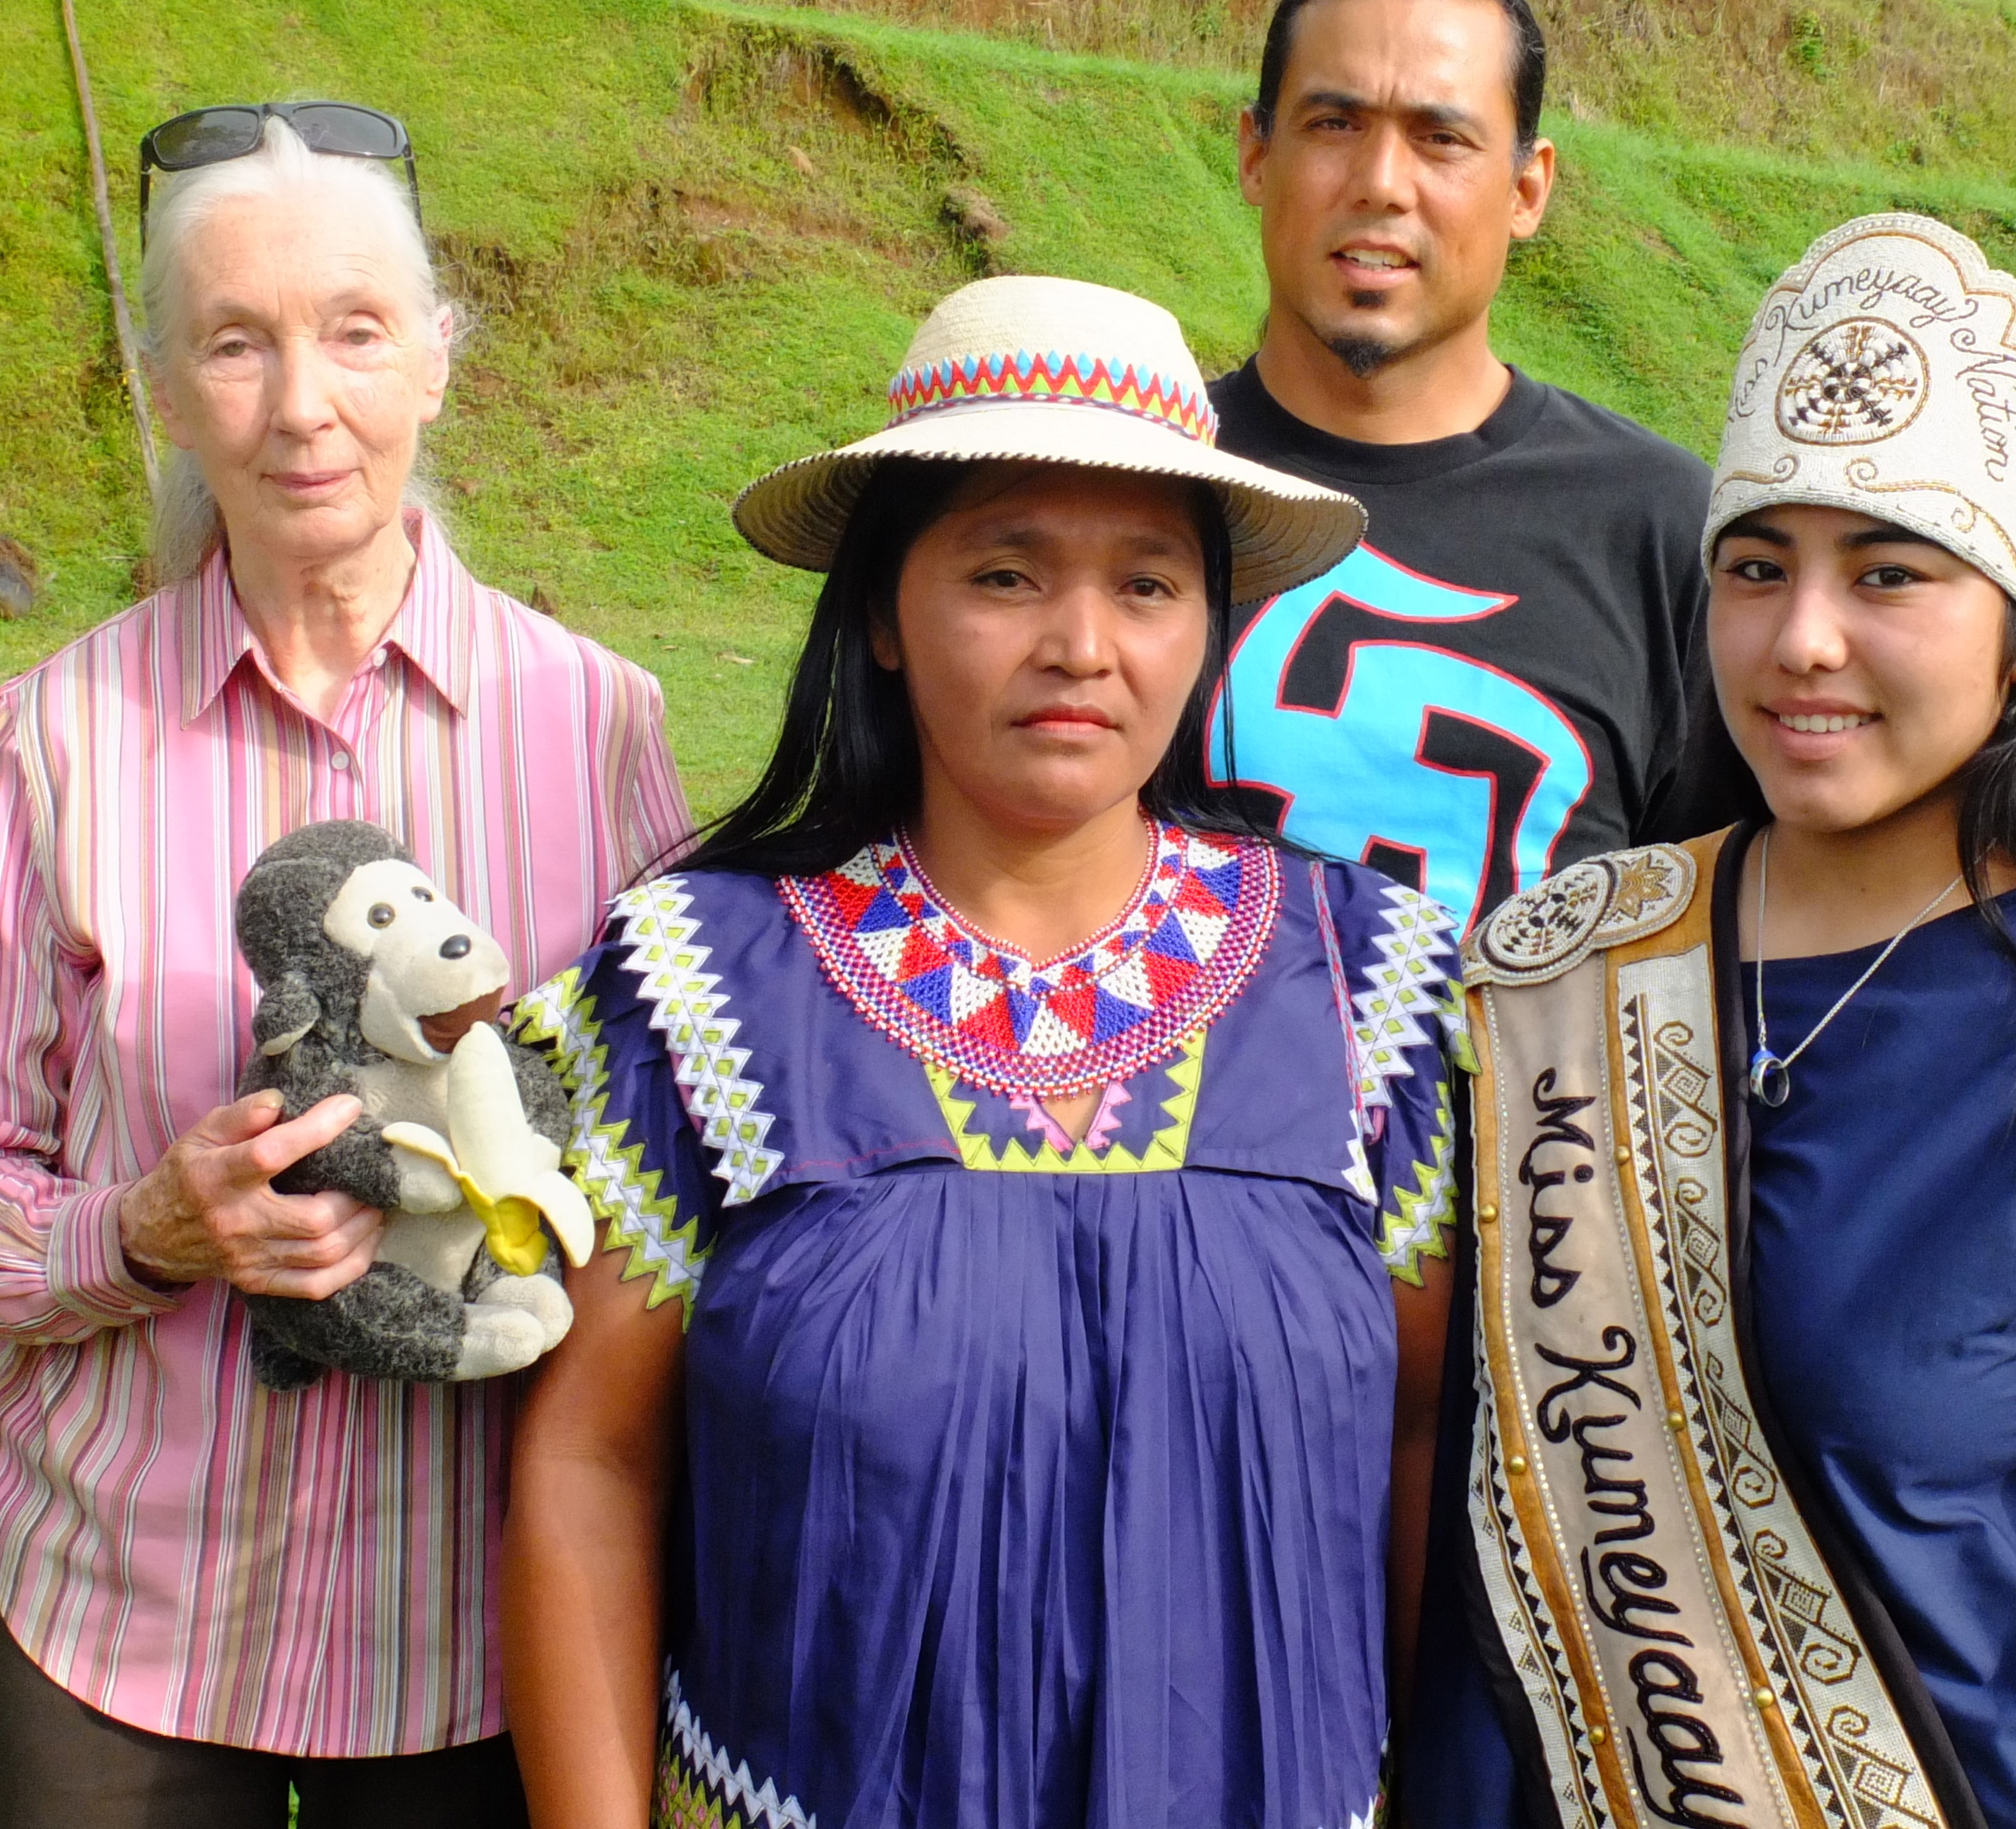 """DR. JANE GOODALL OF """"ROOTS AND SHOOTS"""" , CHEIF SILVIA, AND 2014 MISS KUMEYAAY, DESTINY MORALES, BLESS NEW BIOCULTURAL LEADERSHIP CENTER ON THE PANAMA CANAL WITH EARTHTRAIN.ORG, INTERTRIBALYOUTH.ORG AND FOUR WORLDS INTERNATIONAL."""